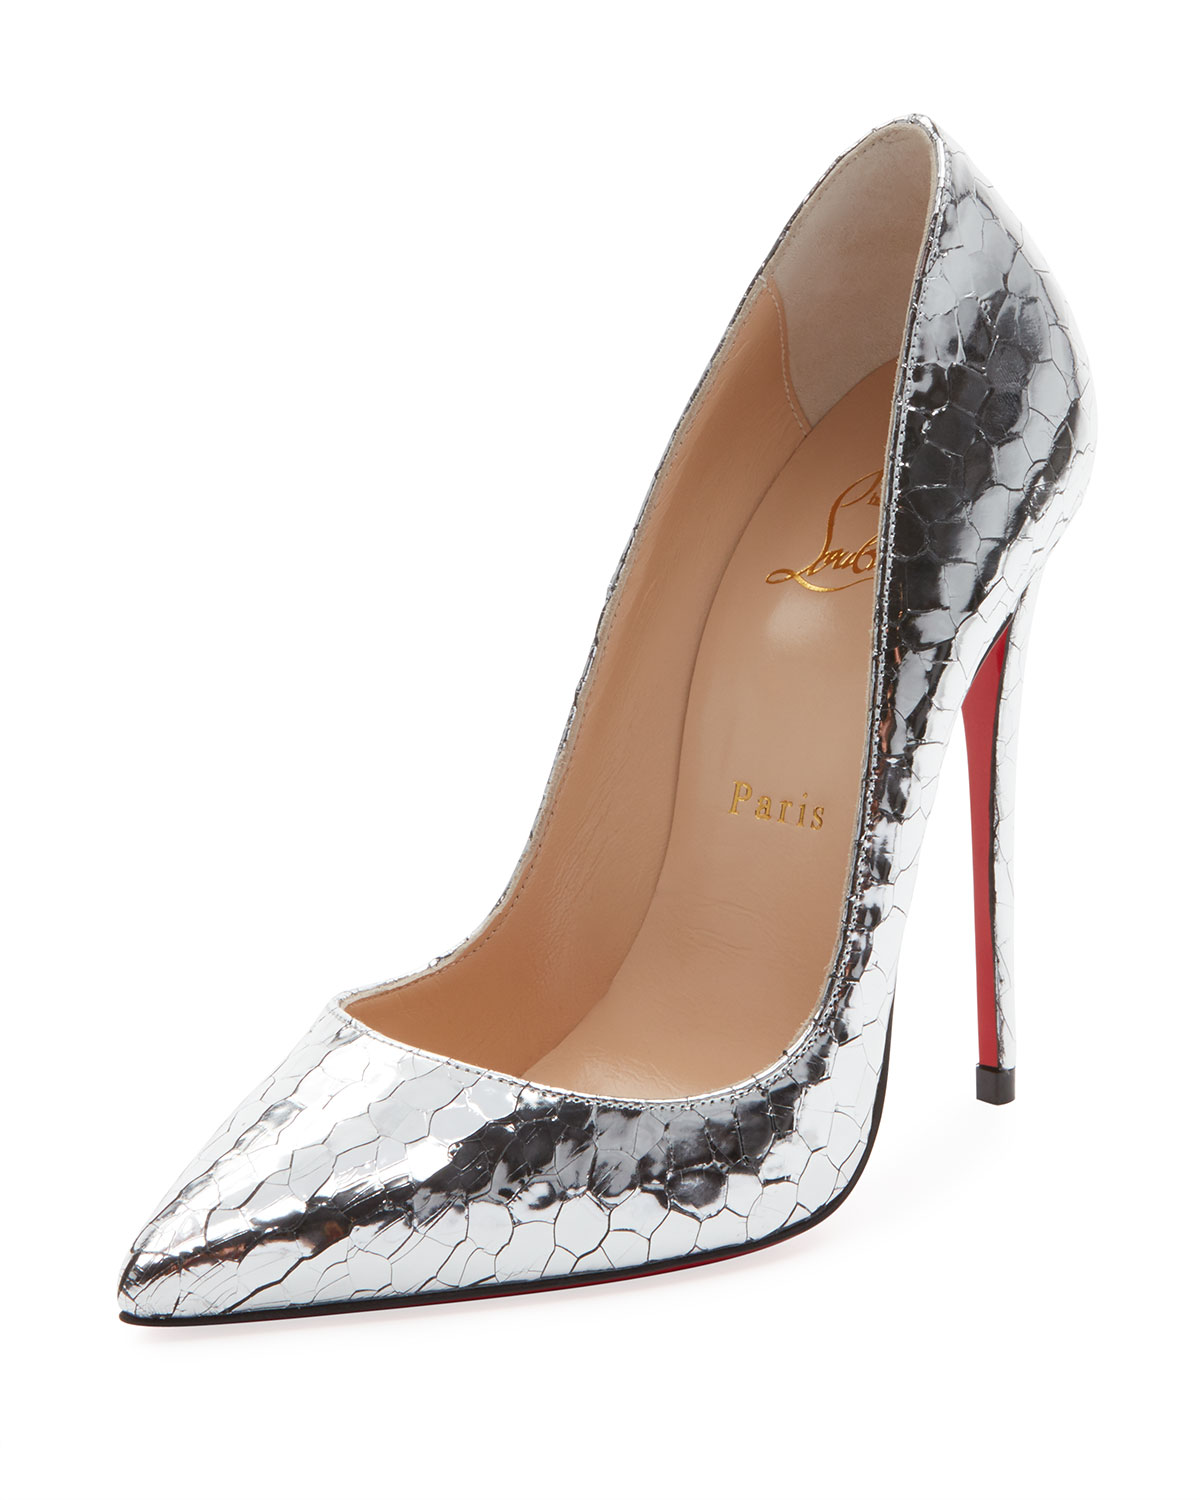 8d3bea9c9a70 Christian Louboutin So Kate 120mm Metallic Crackled Leather Red Sole Pumps